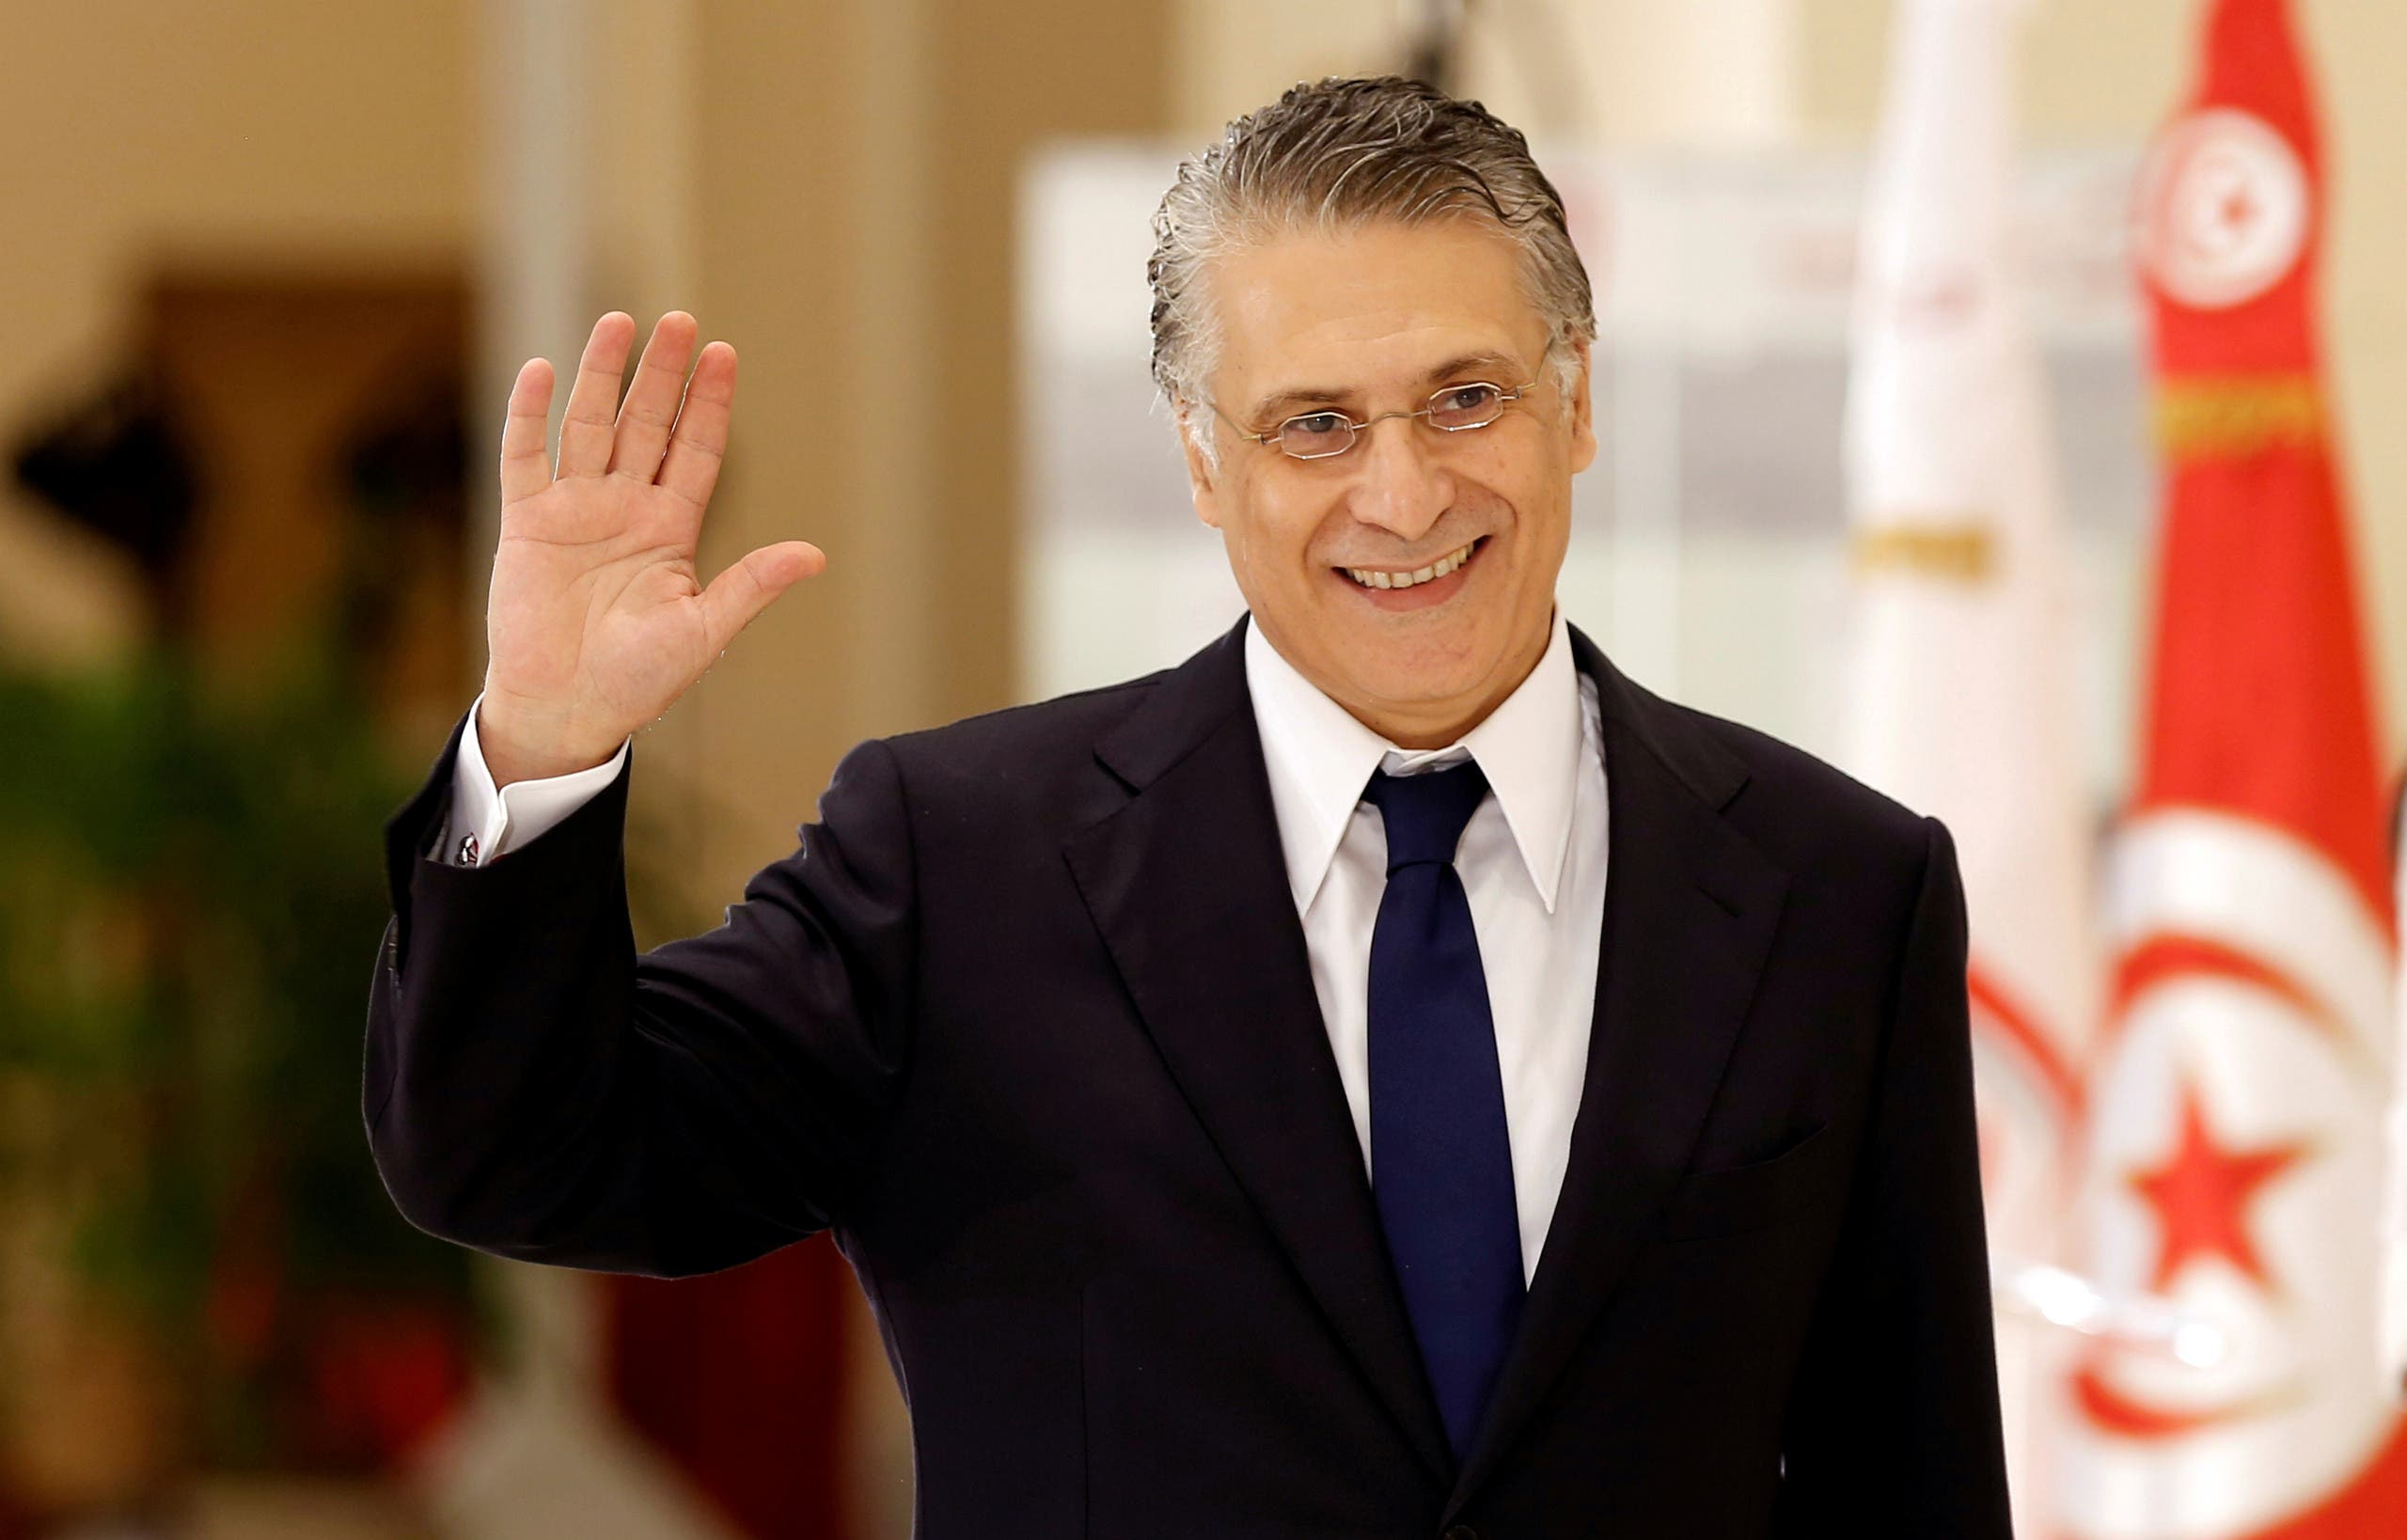 Tunisian politician and presidential candidate in the country's 2019 elections, Nabil Karoui. (Reuters)